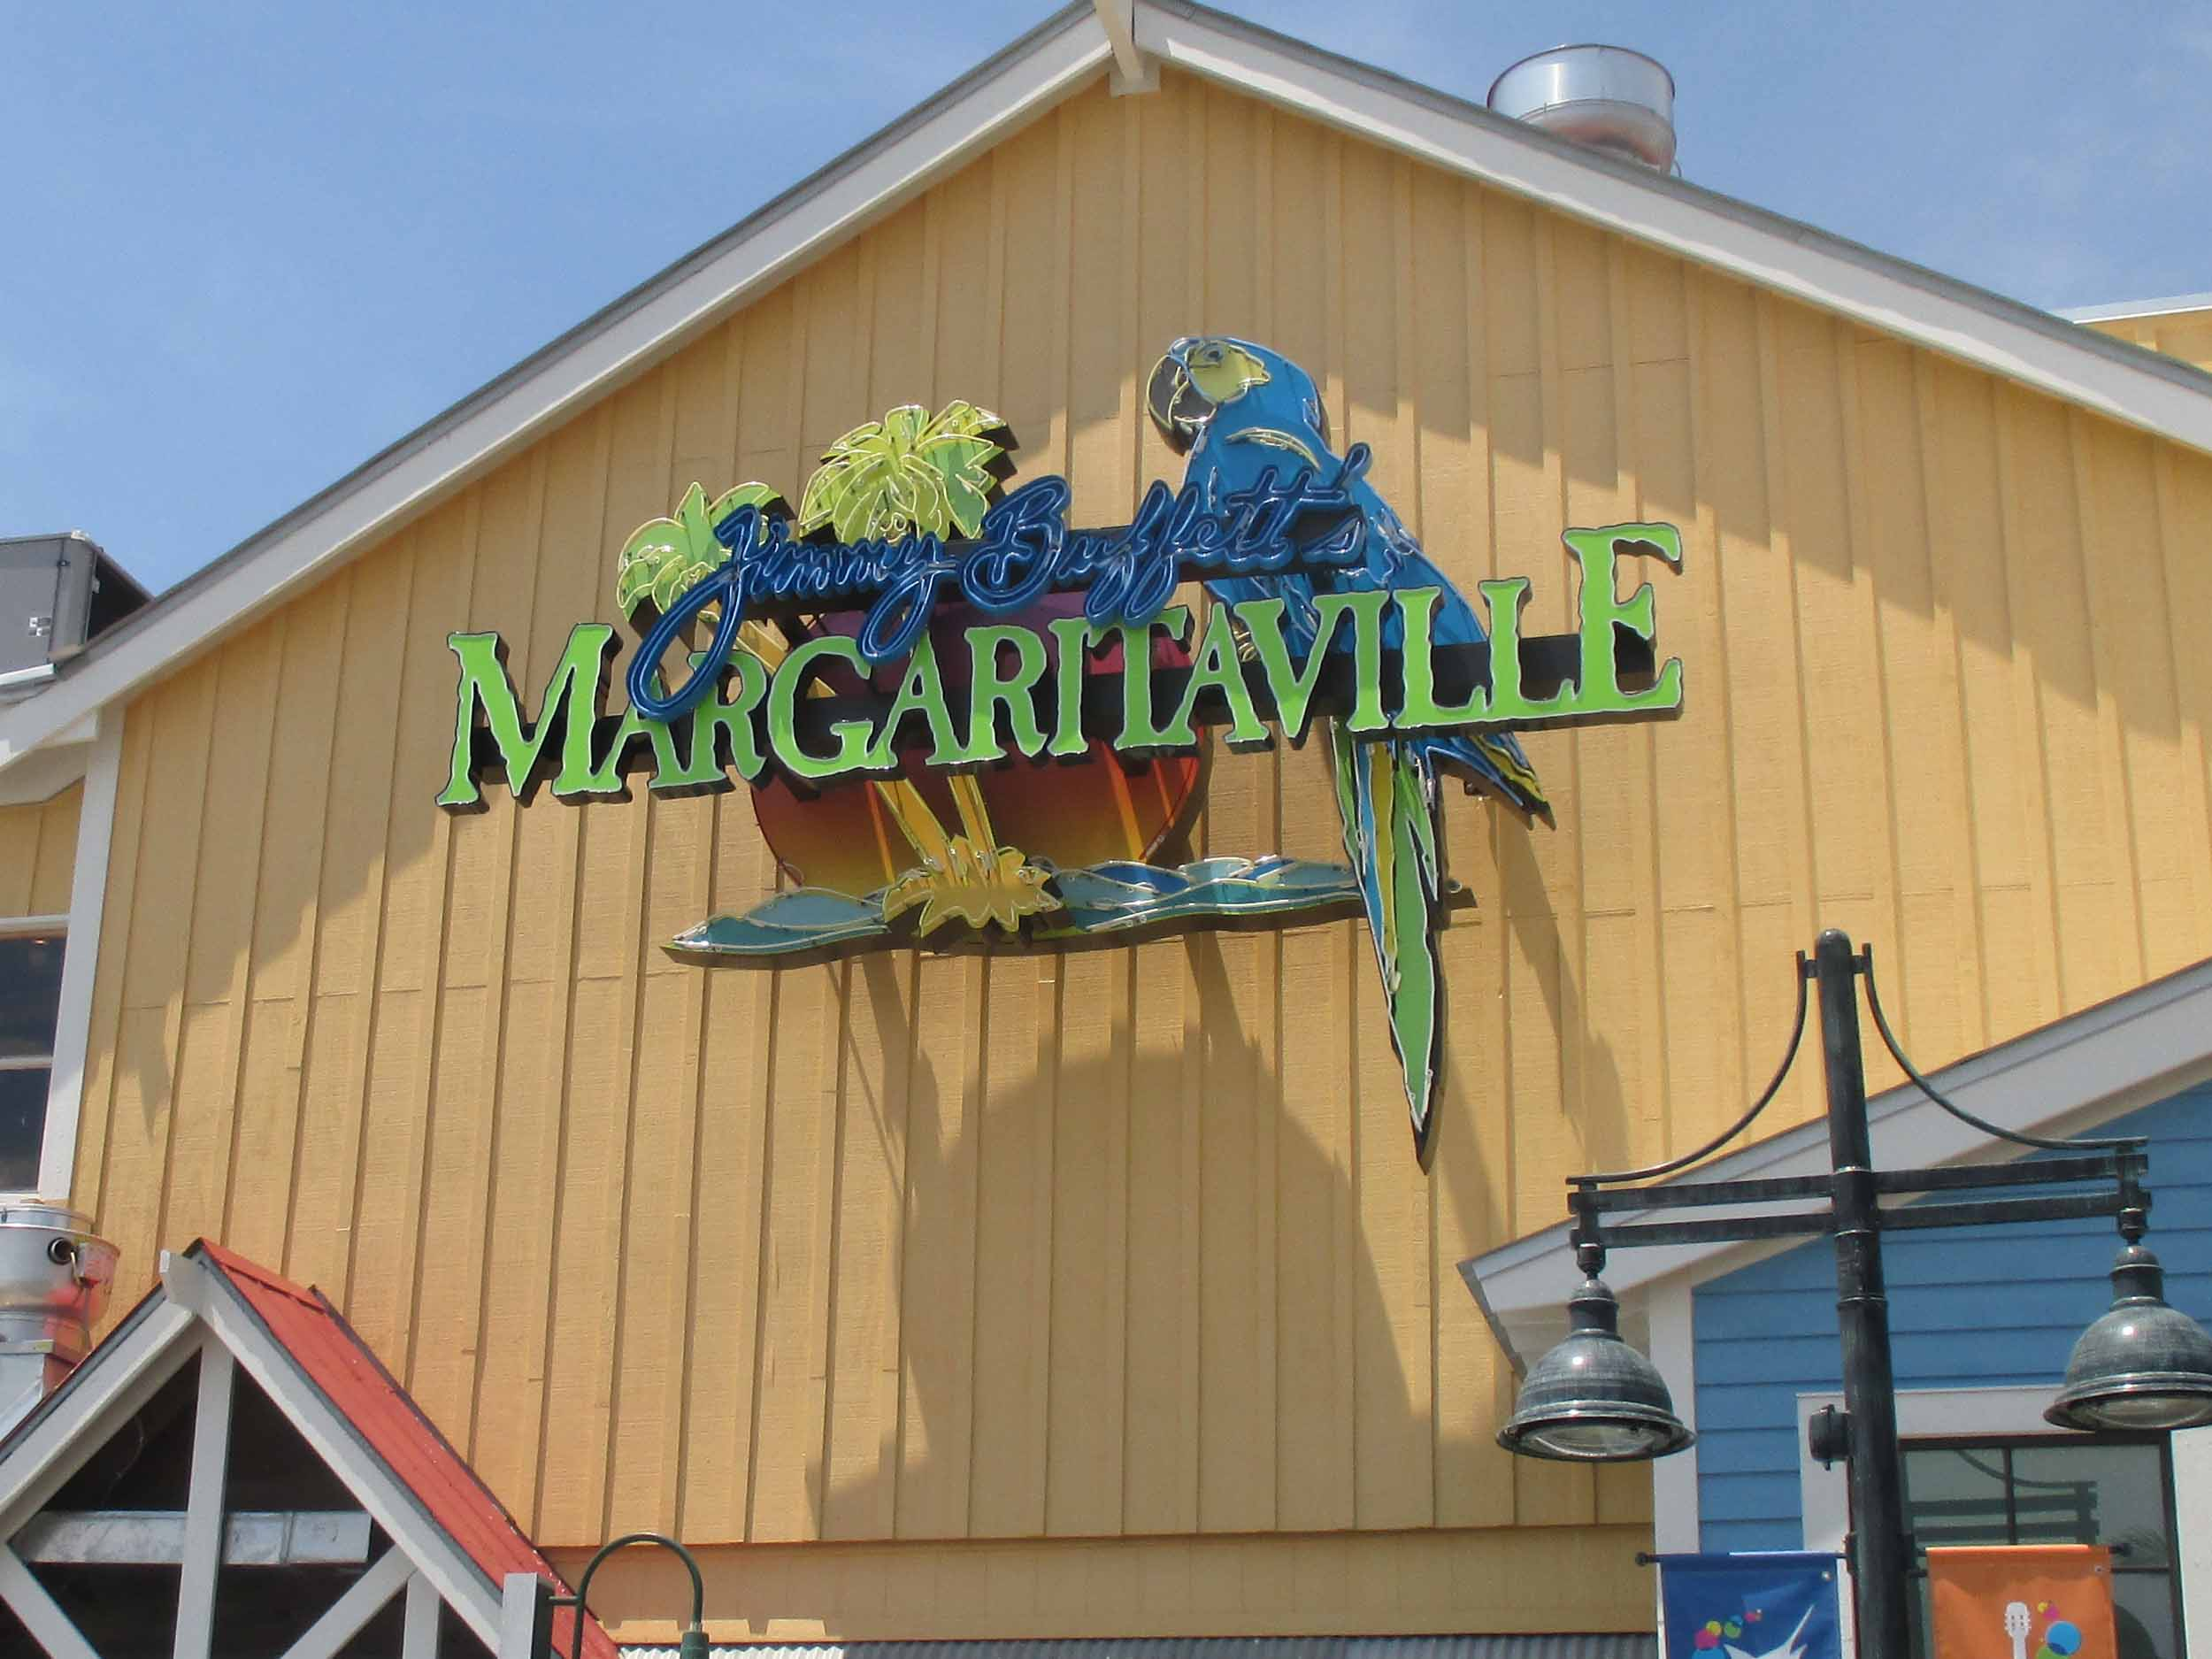 Jimmy Buffett's Margaritaville Sign